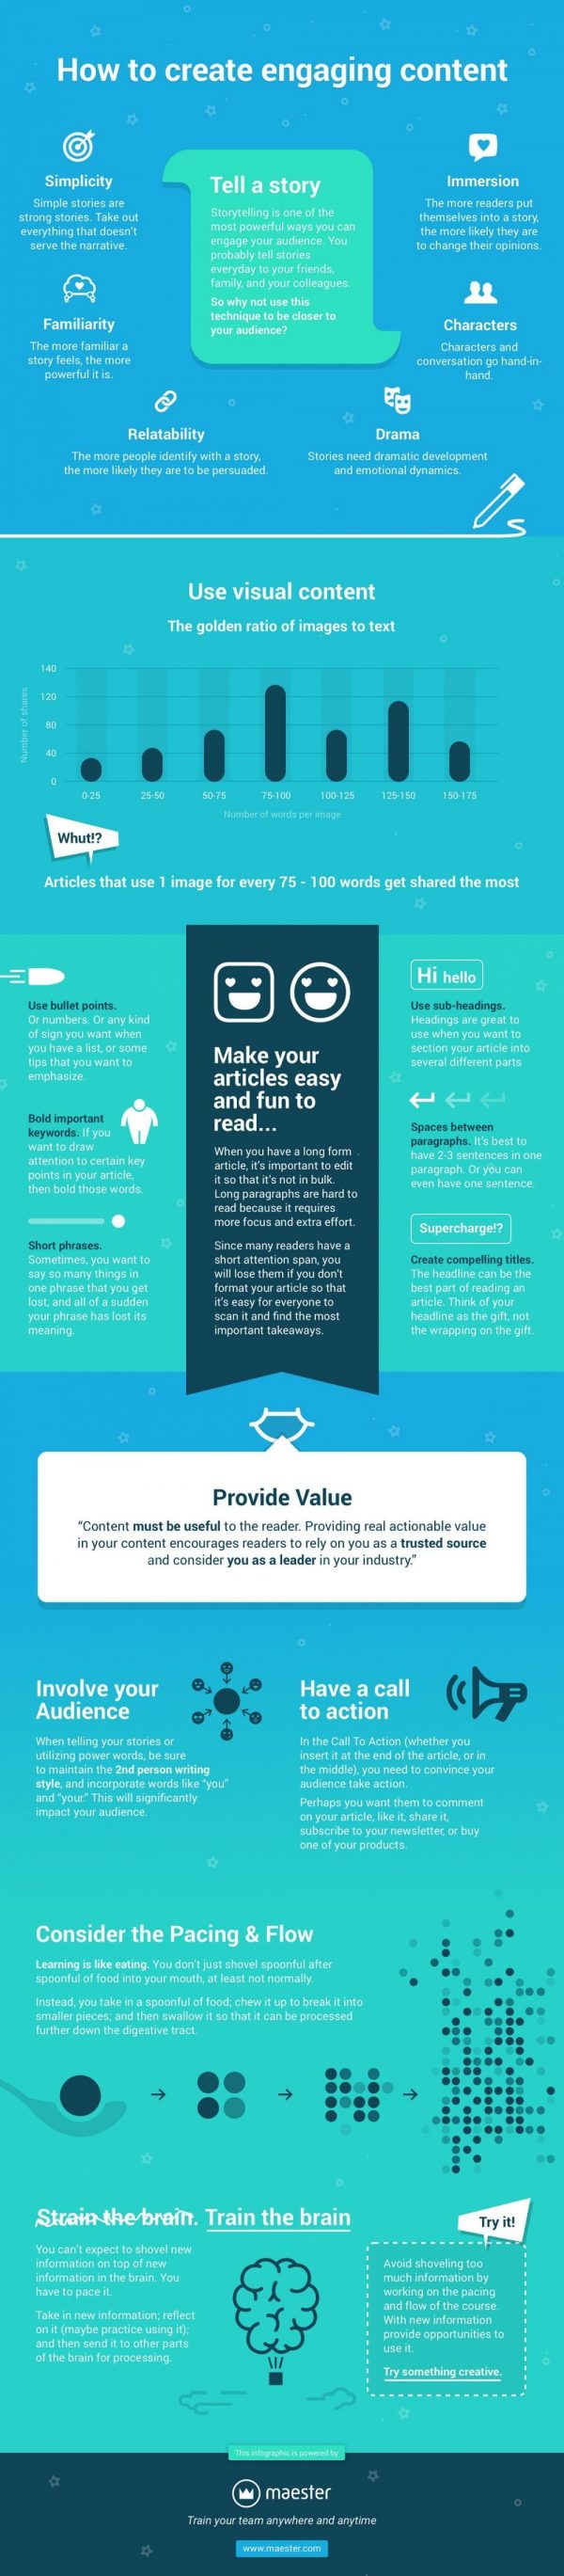 How-to-Create-Engaging-Content-Infographic